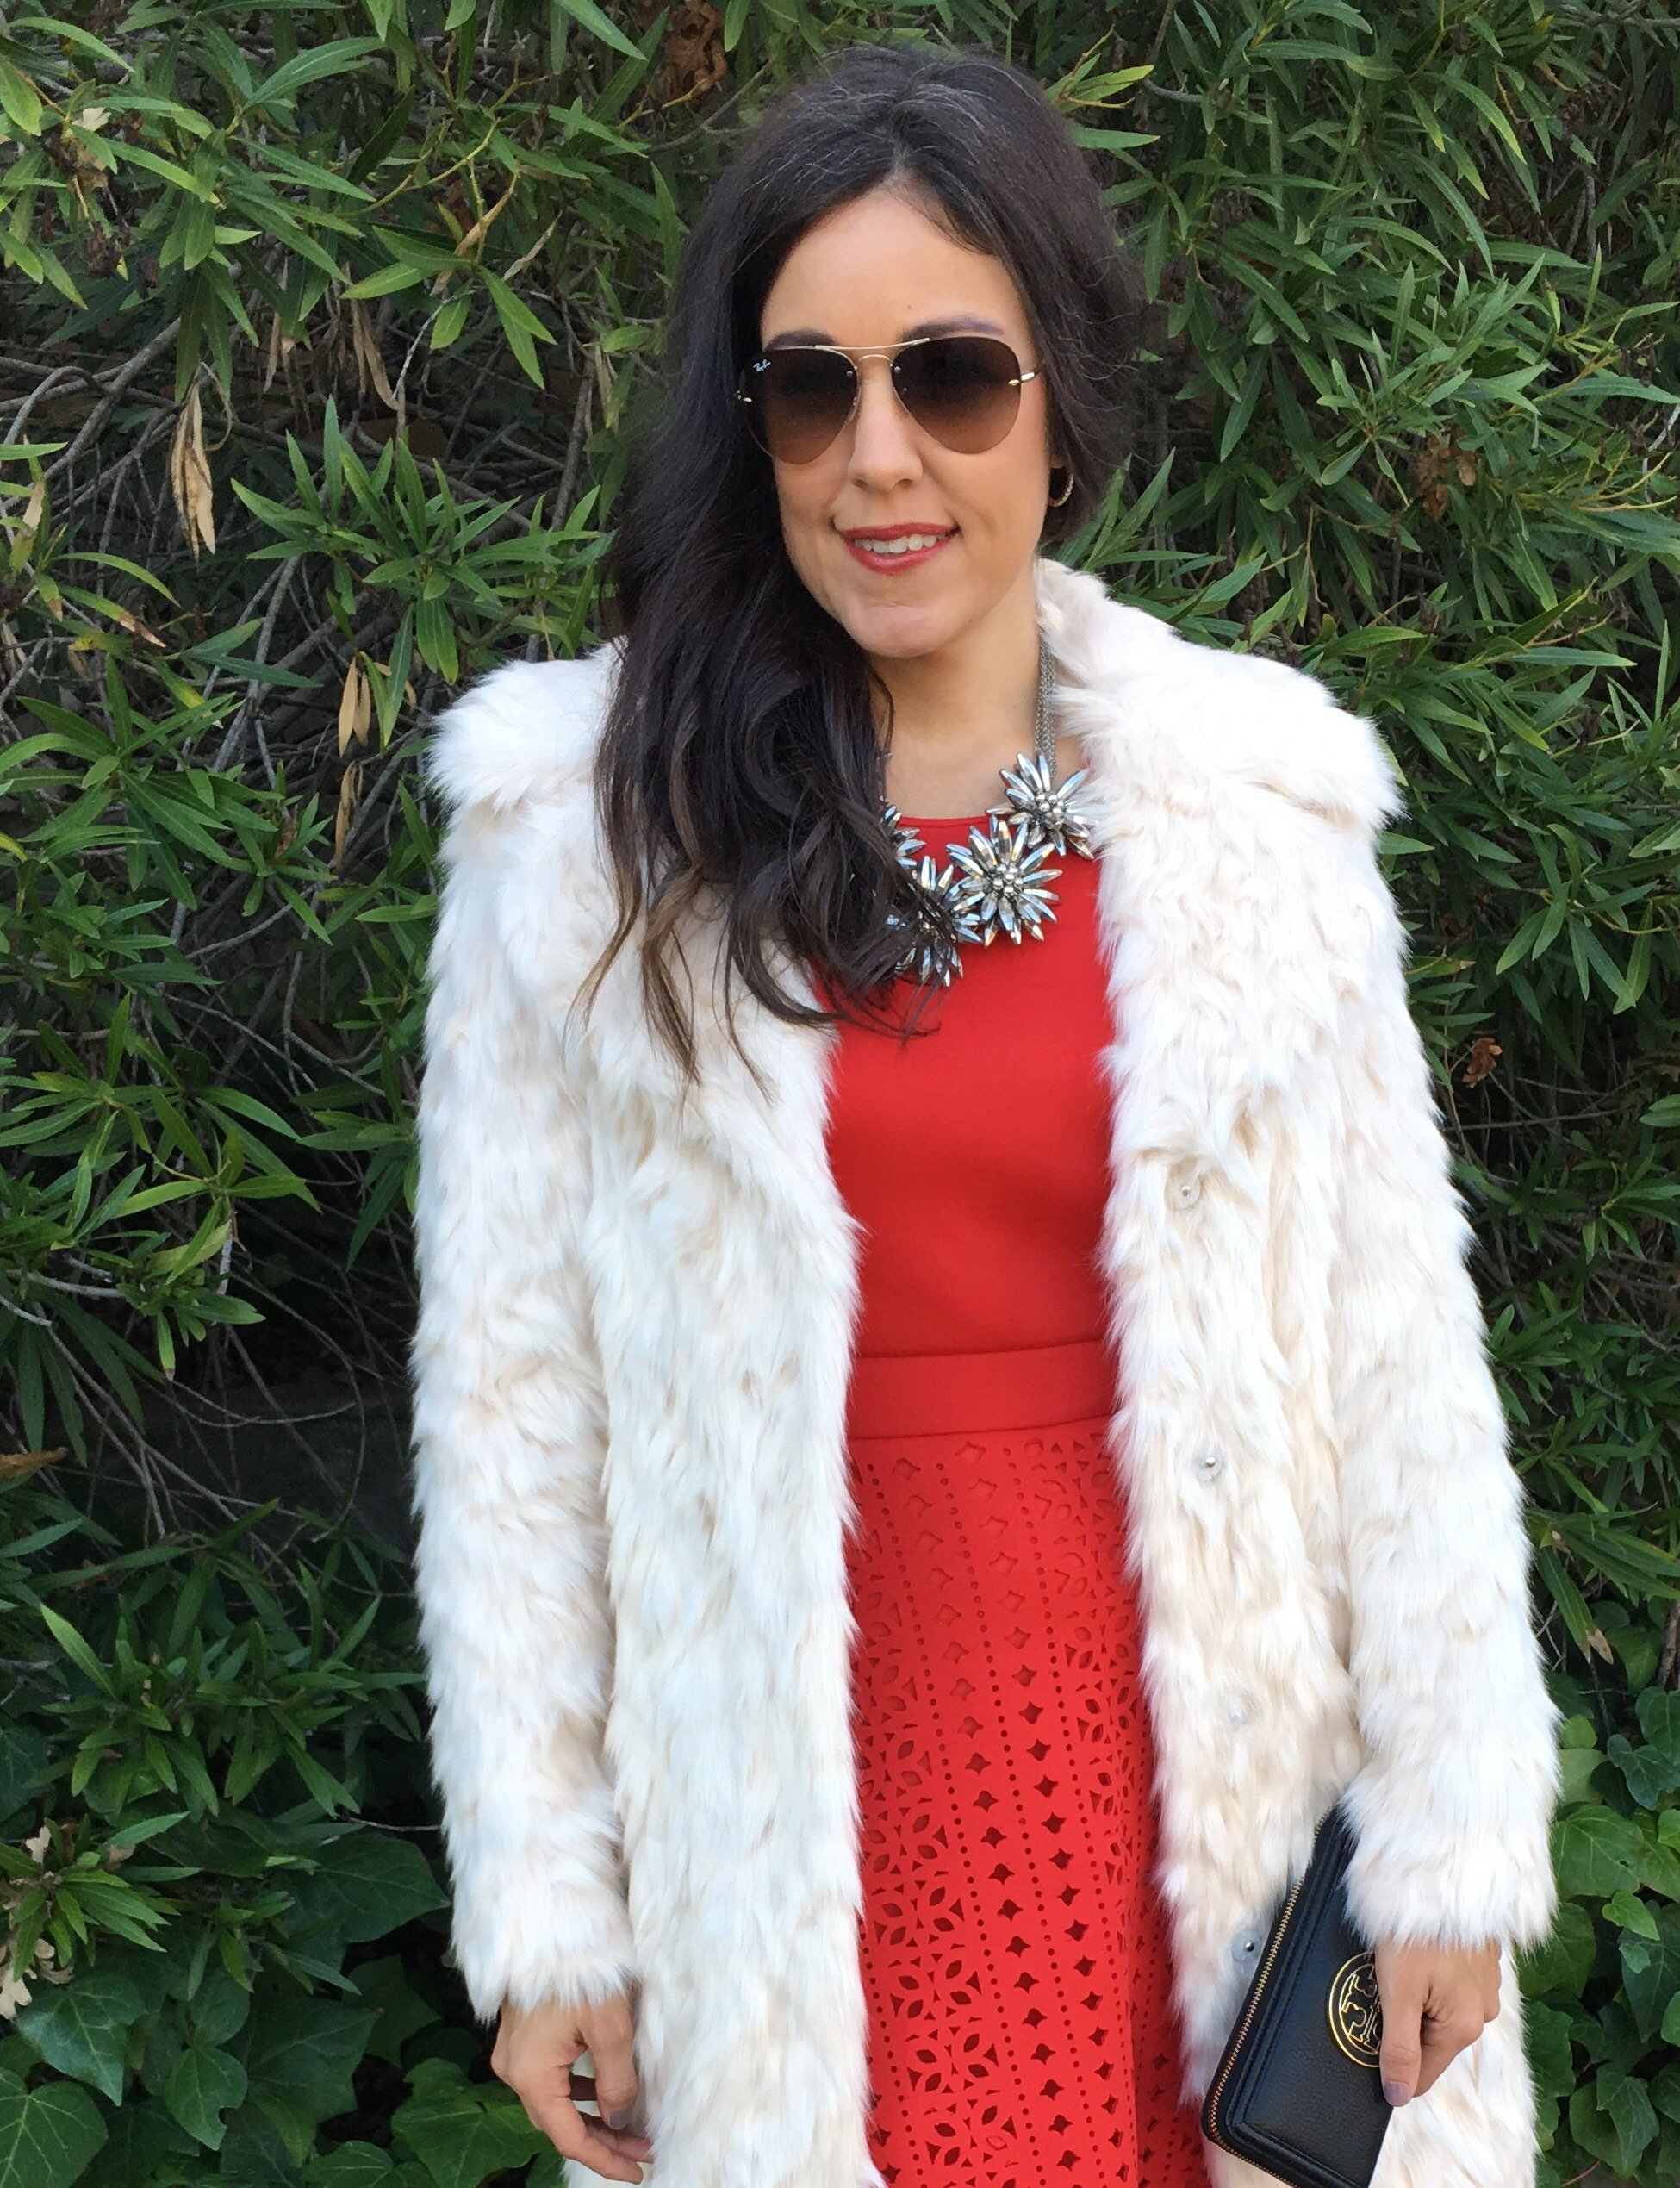 How to style faux fur   fall and winter style   winter fashion tips   holiday outfit ideas   cool weather fashion